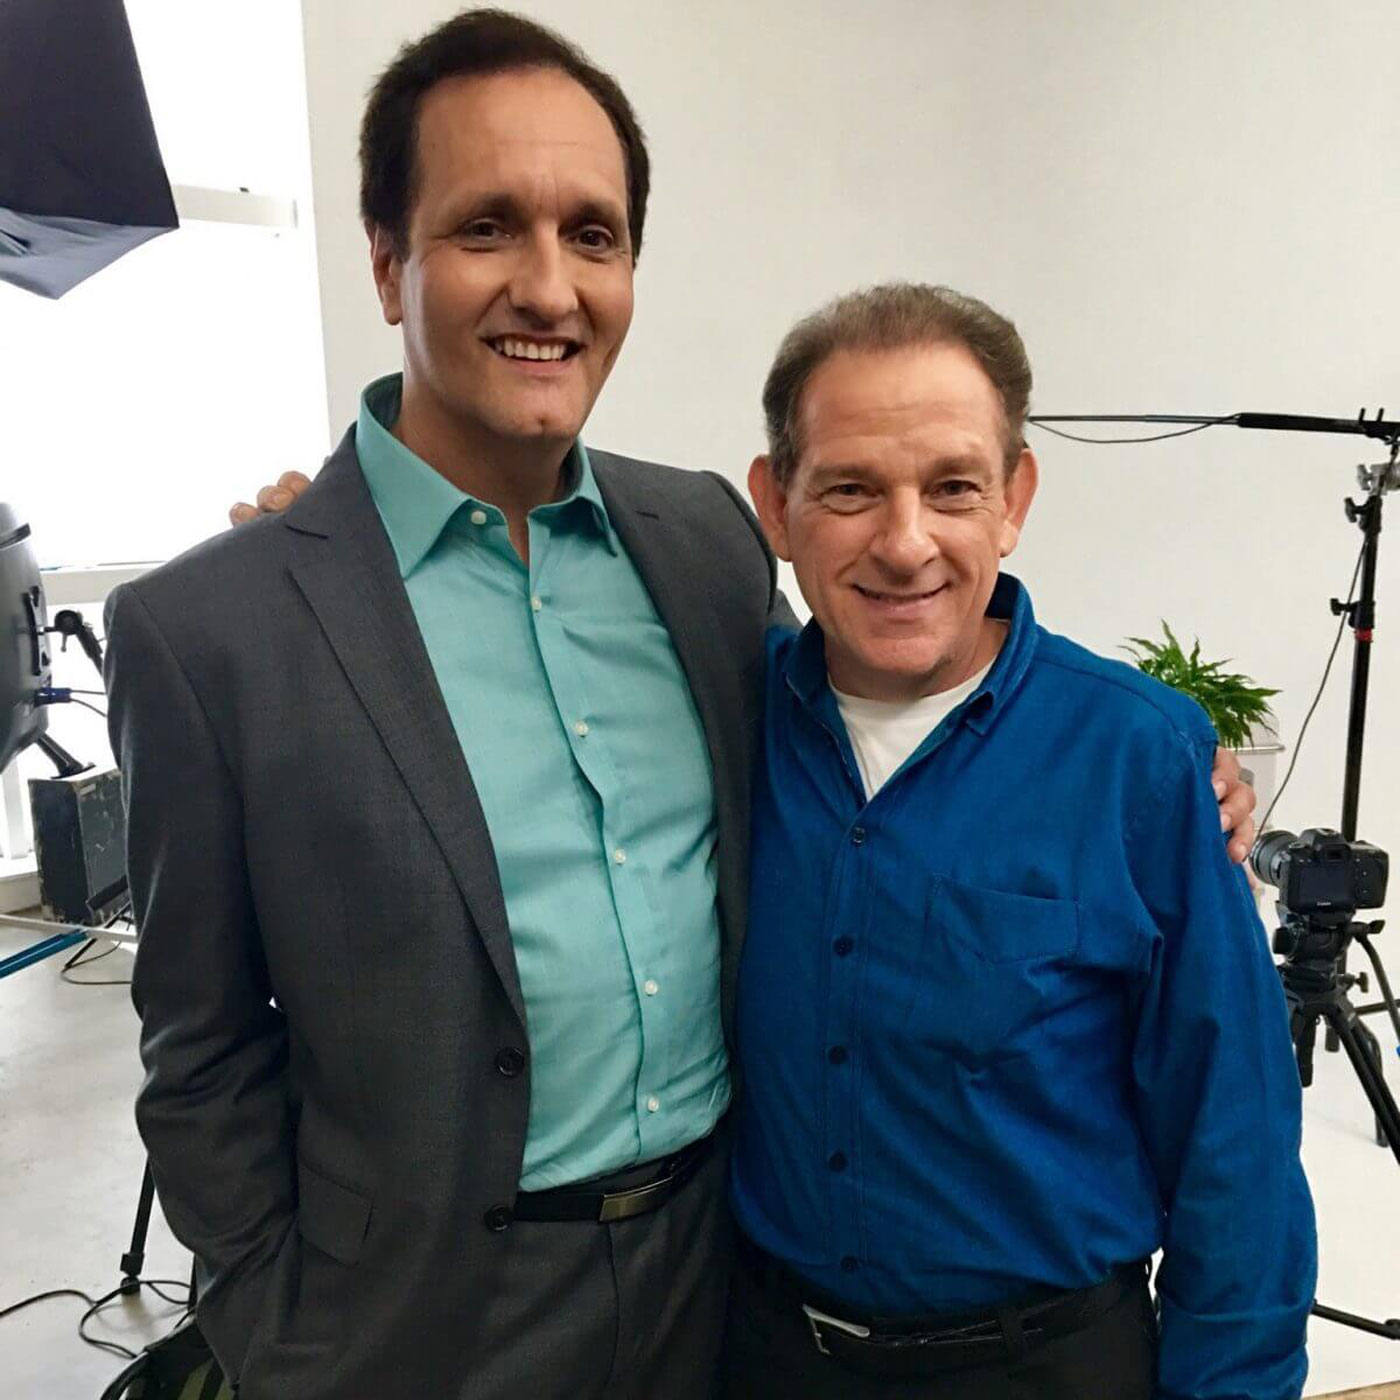 Peter Diaz with Joel Roberts